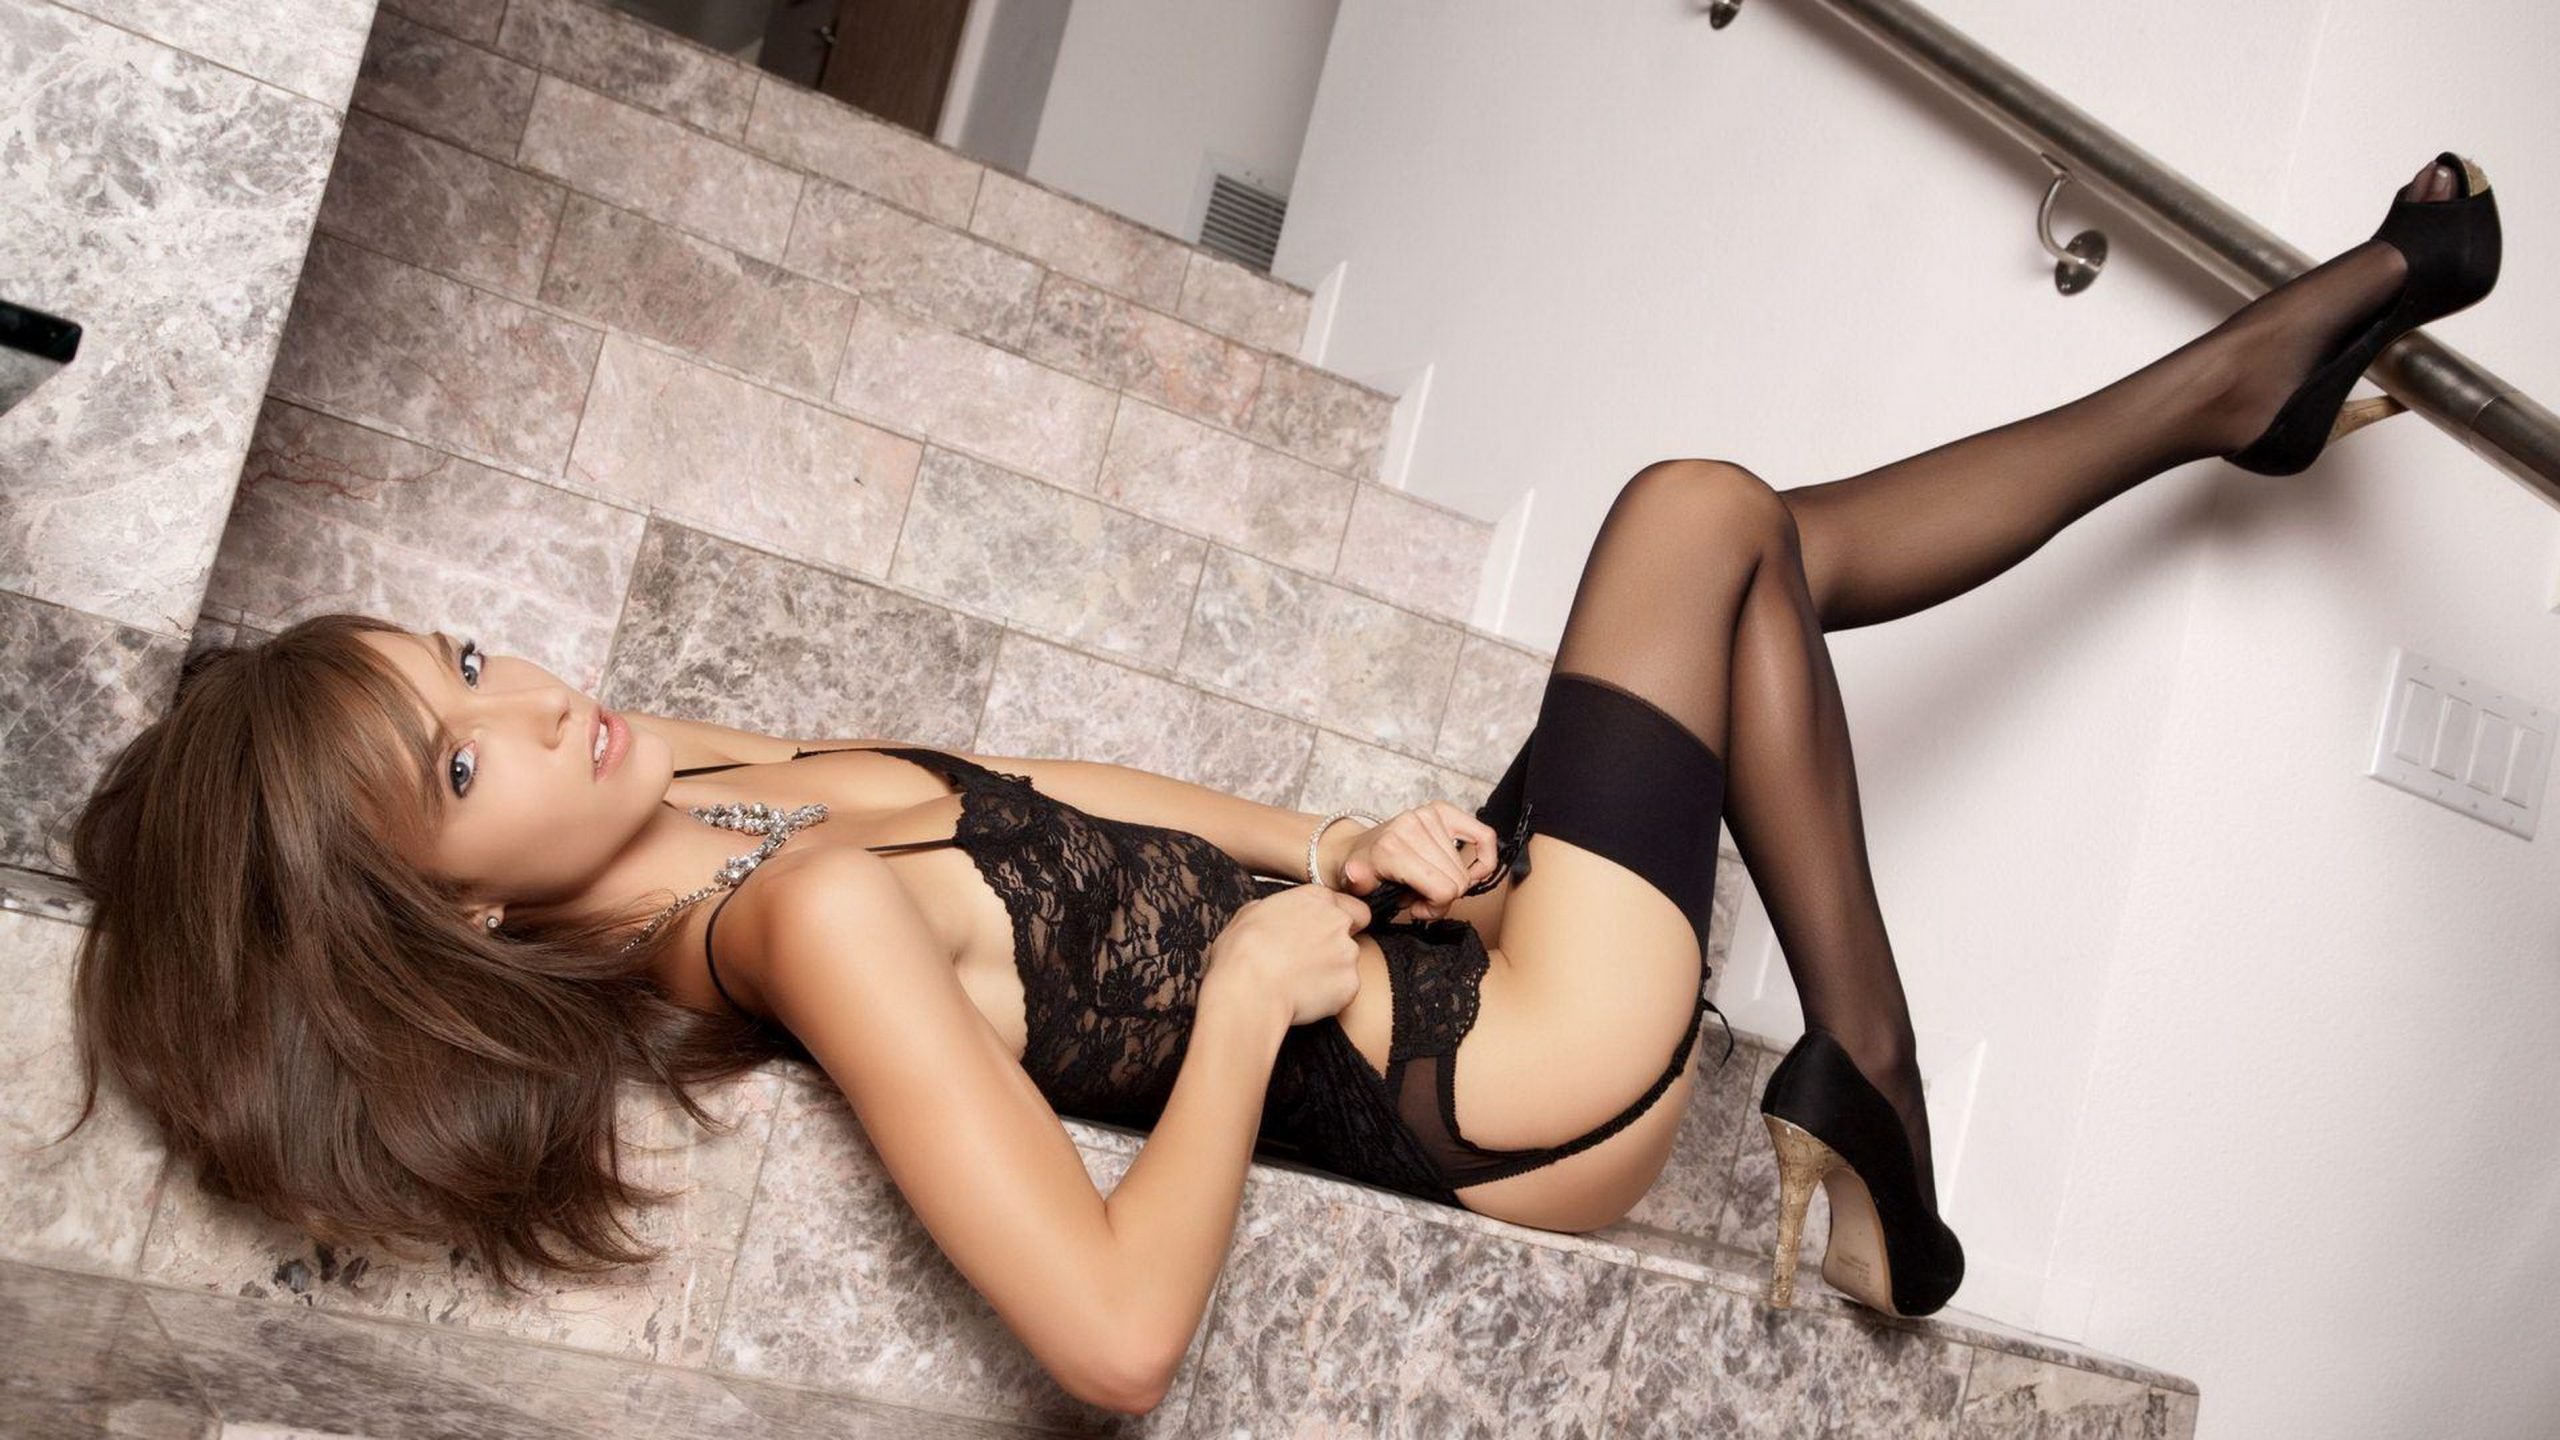 London escorts long sexy legs